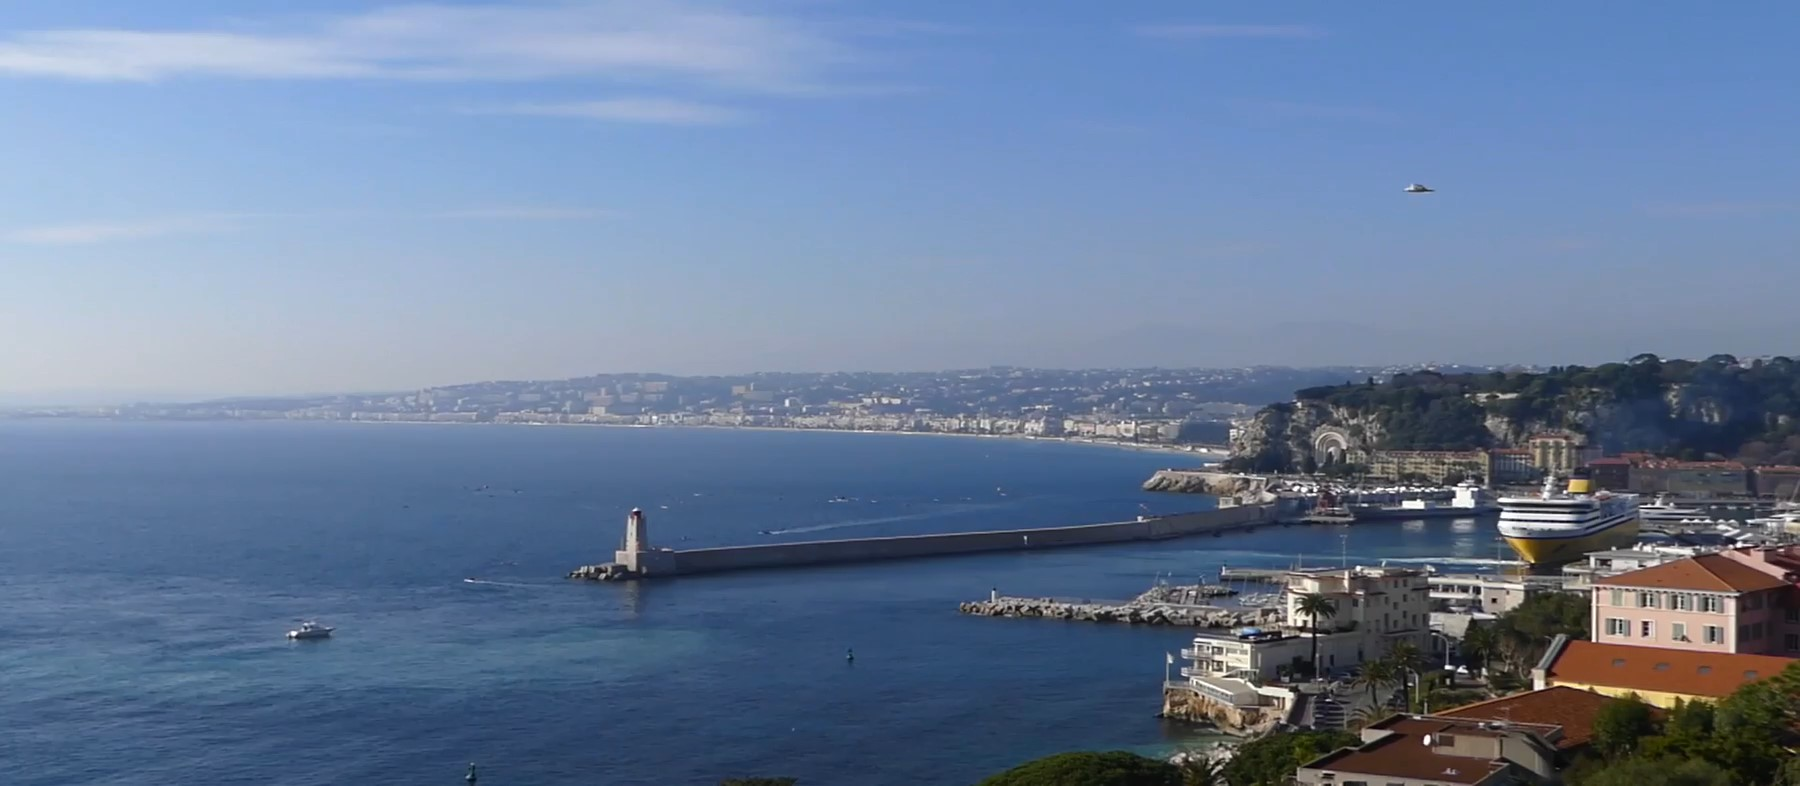 Rent Holiday Apartments, Vacation Apartments in Nice